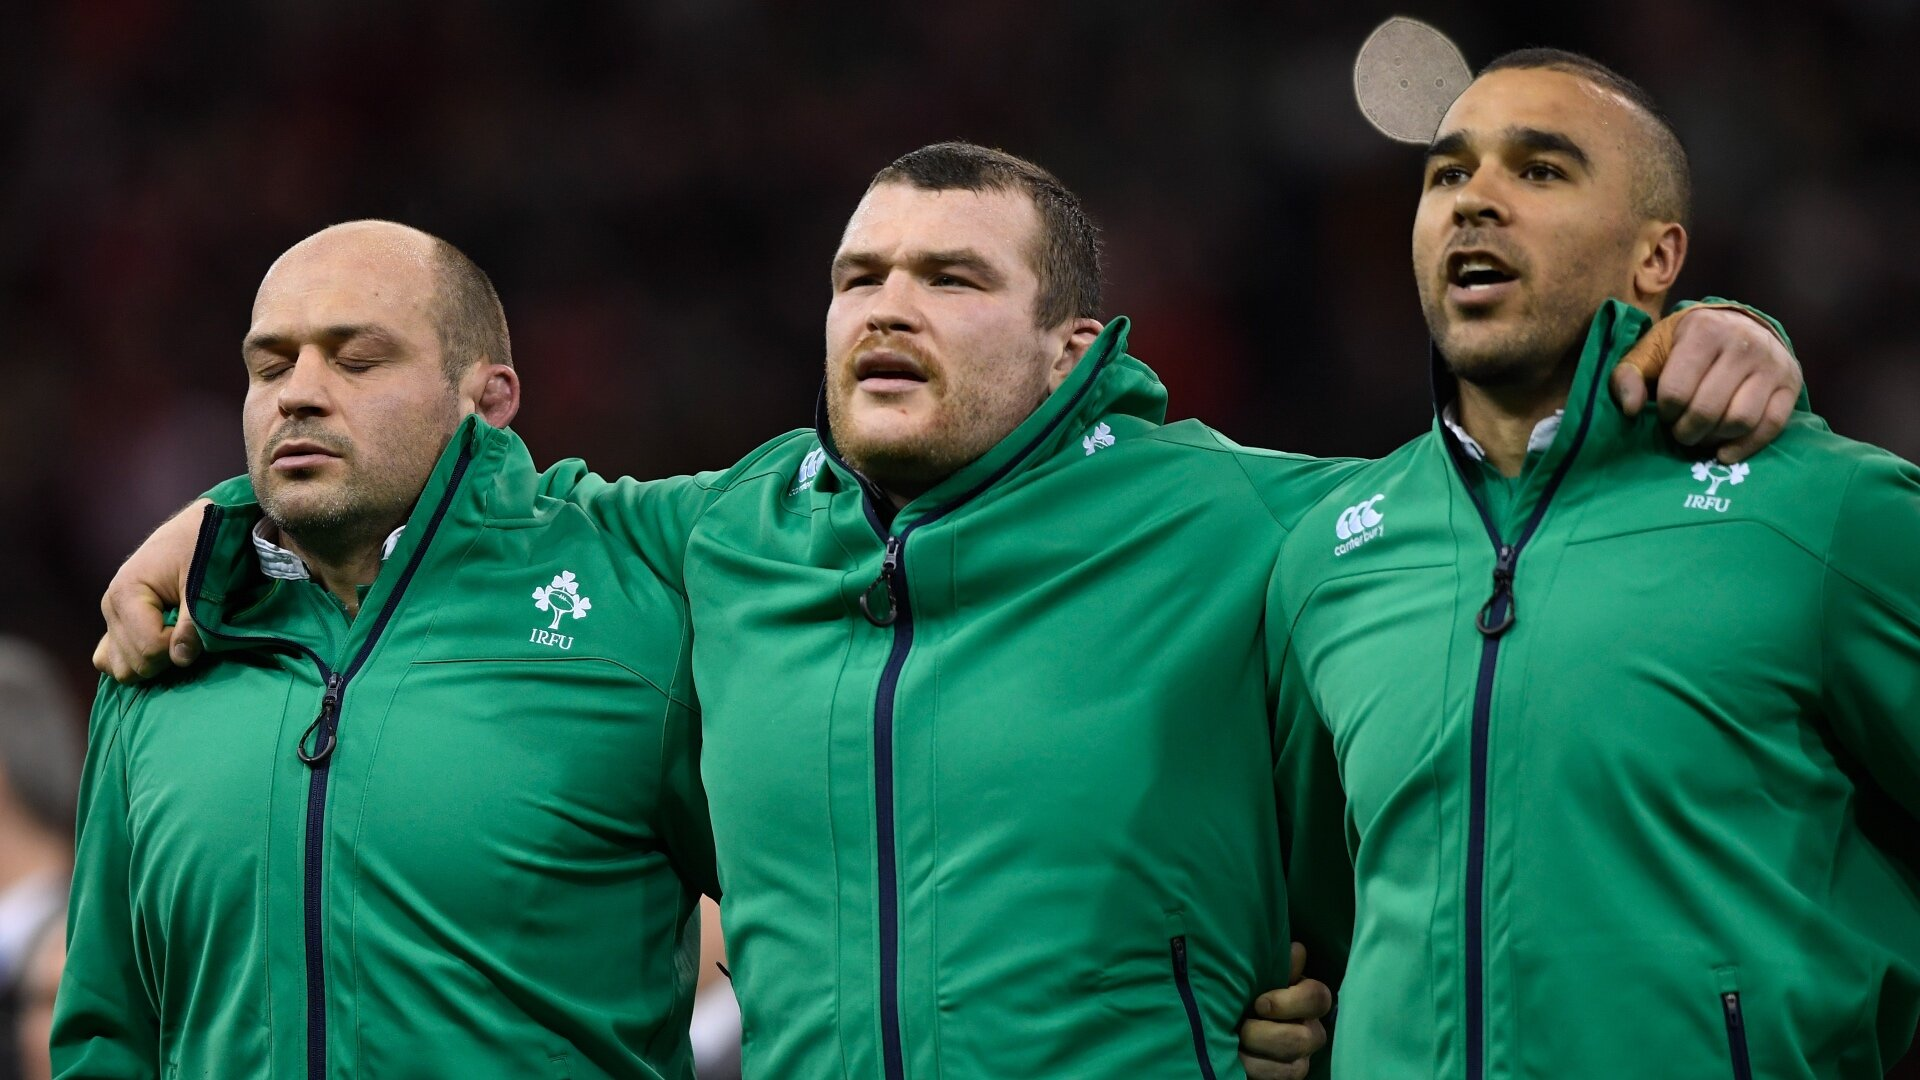 Rory Best not singing